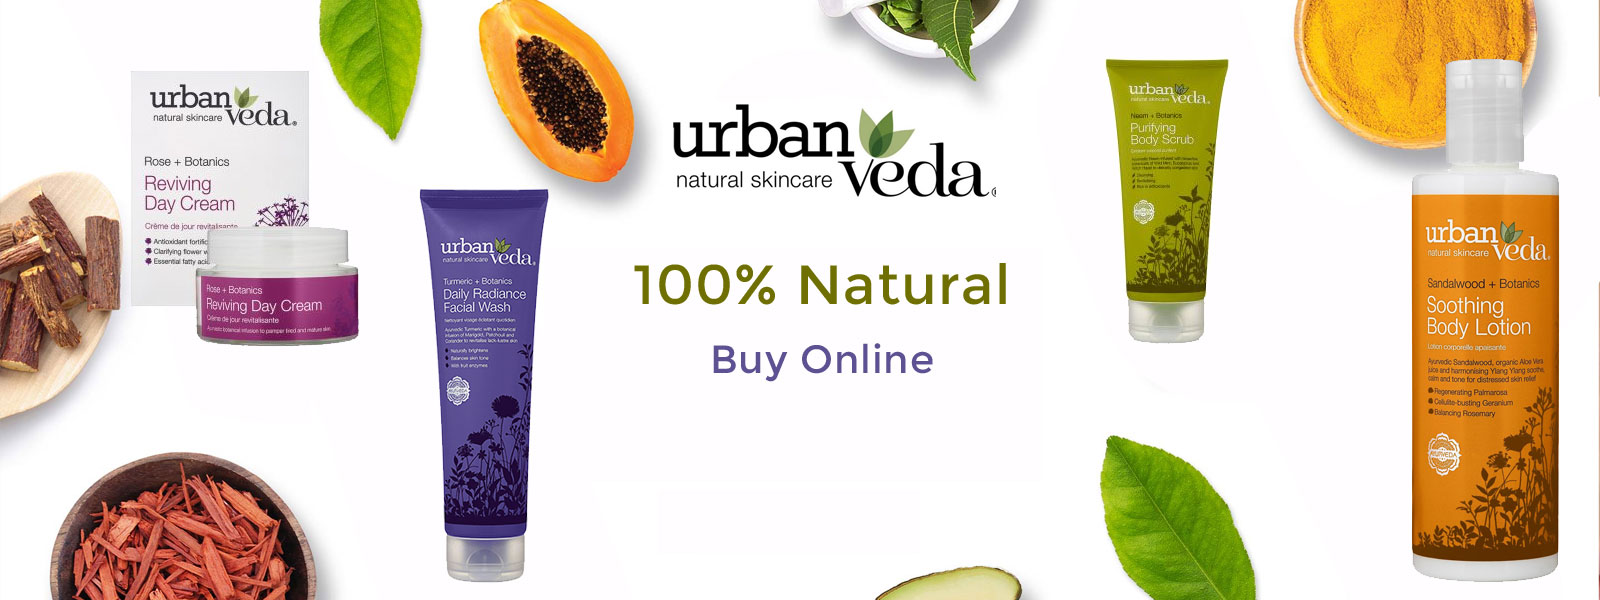 urban-veda-products-in-uae